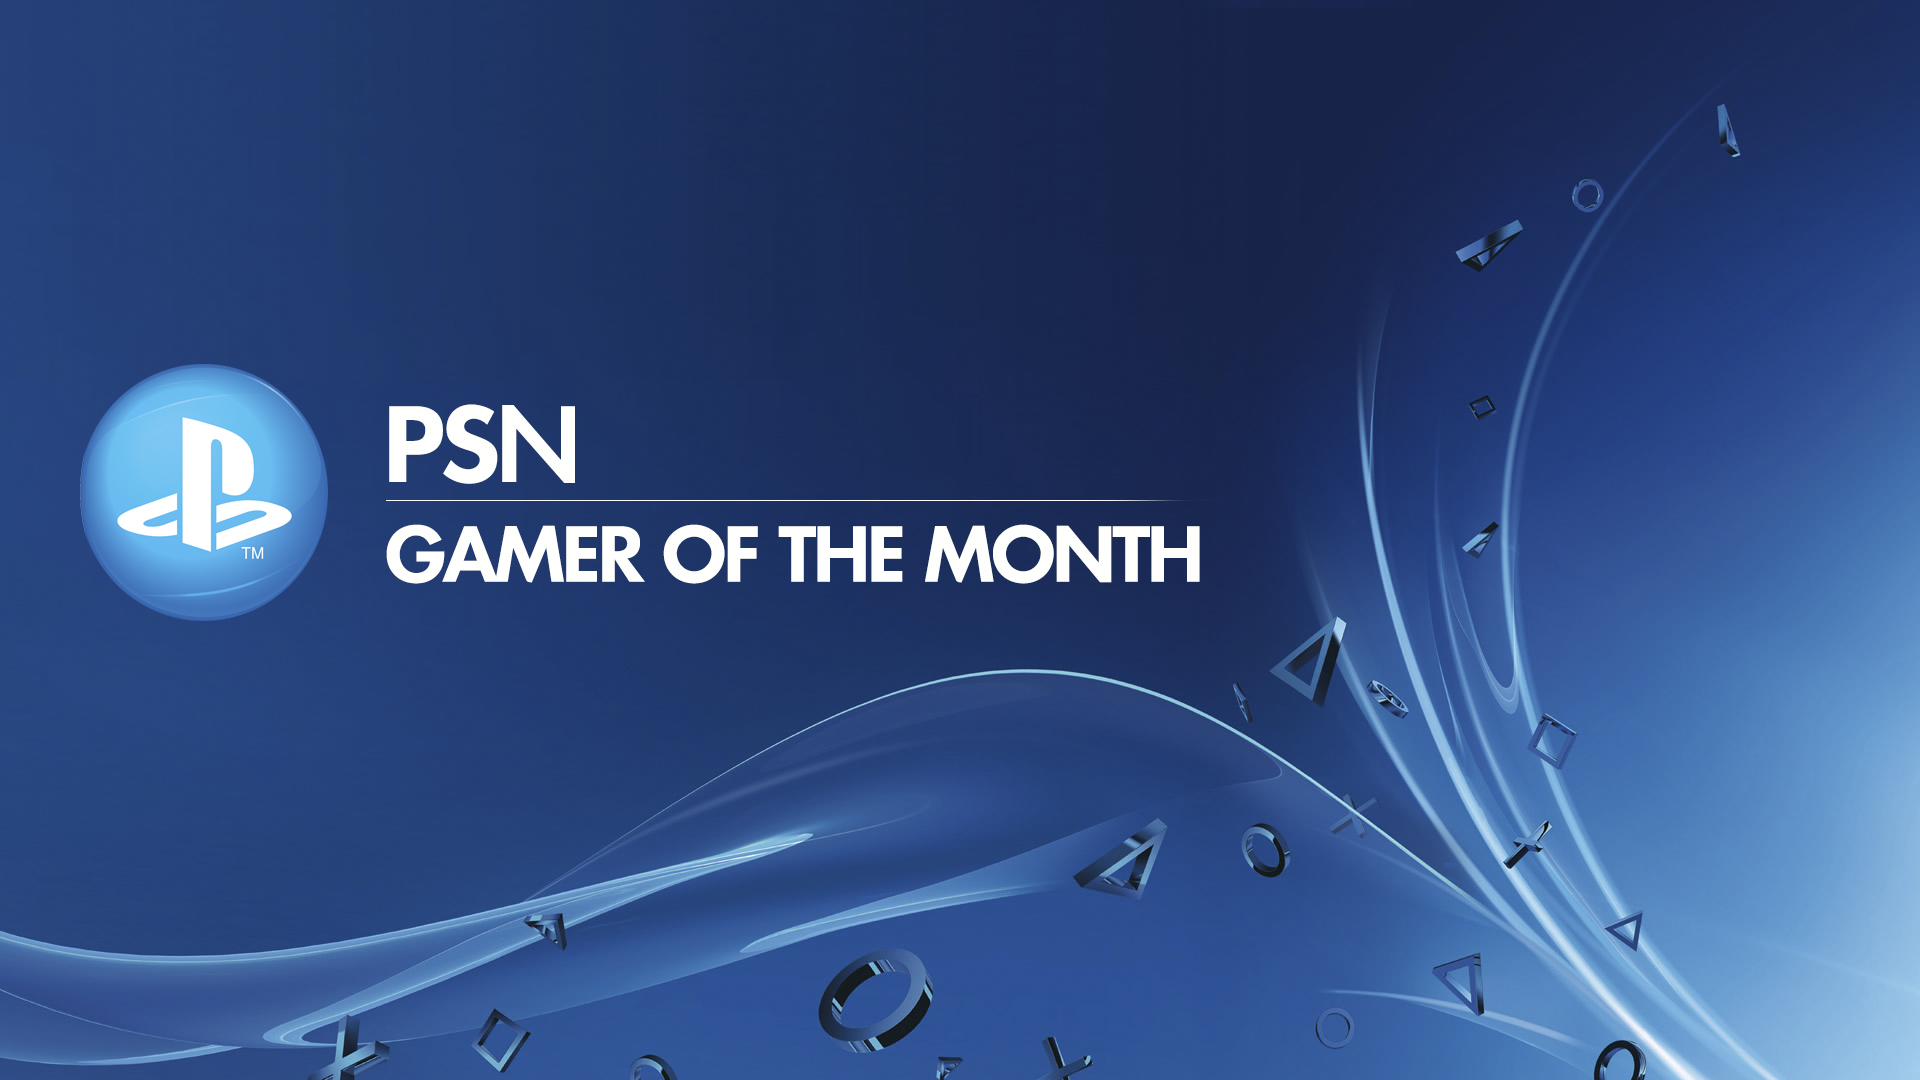 psn-gamer-of-the-month-2.jpg